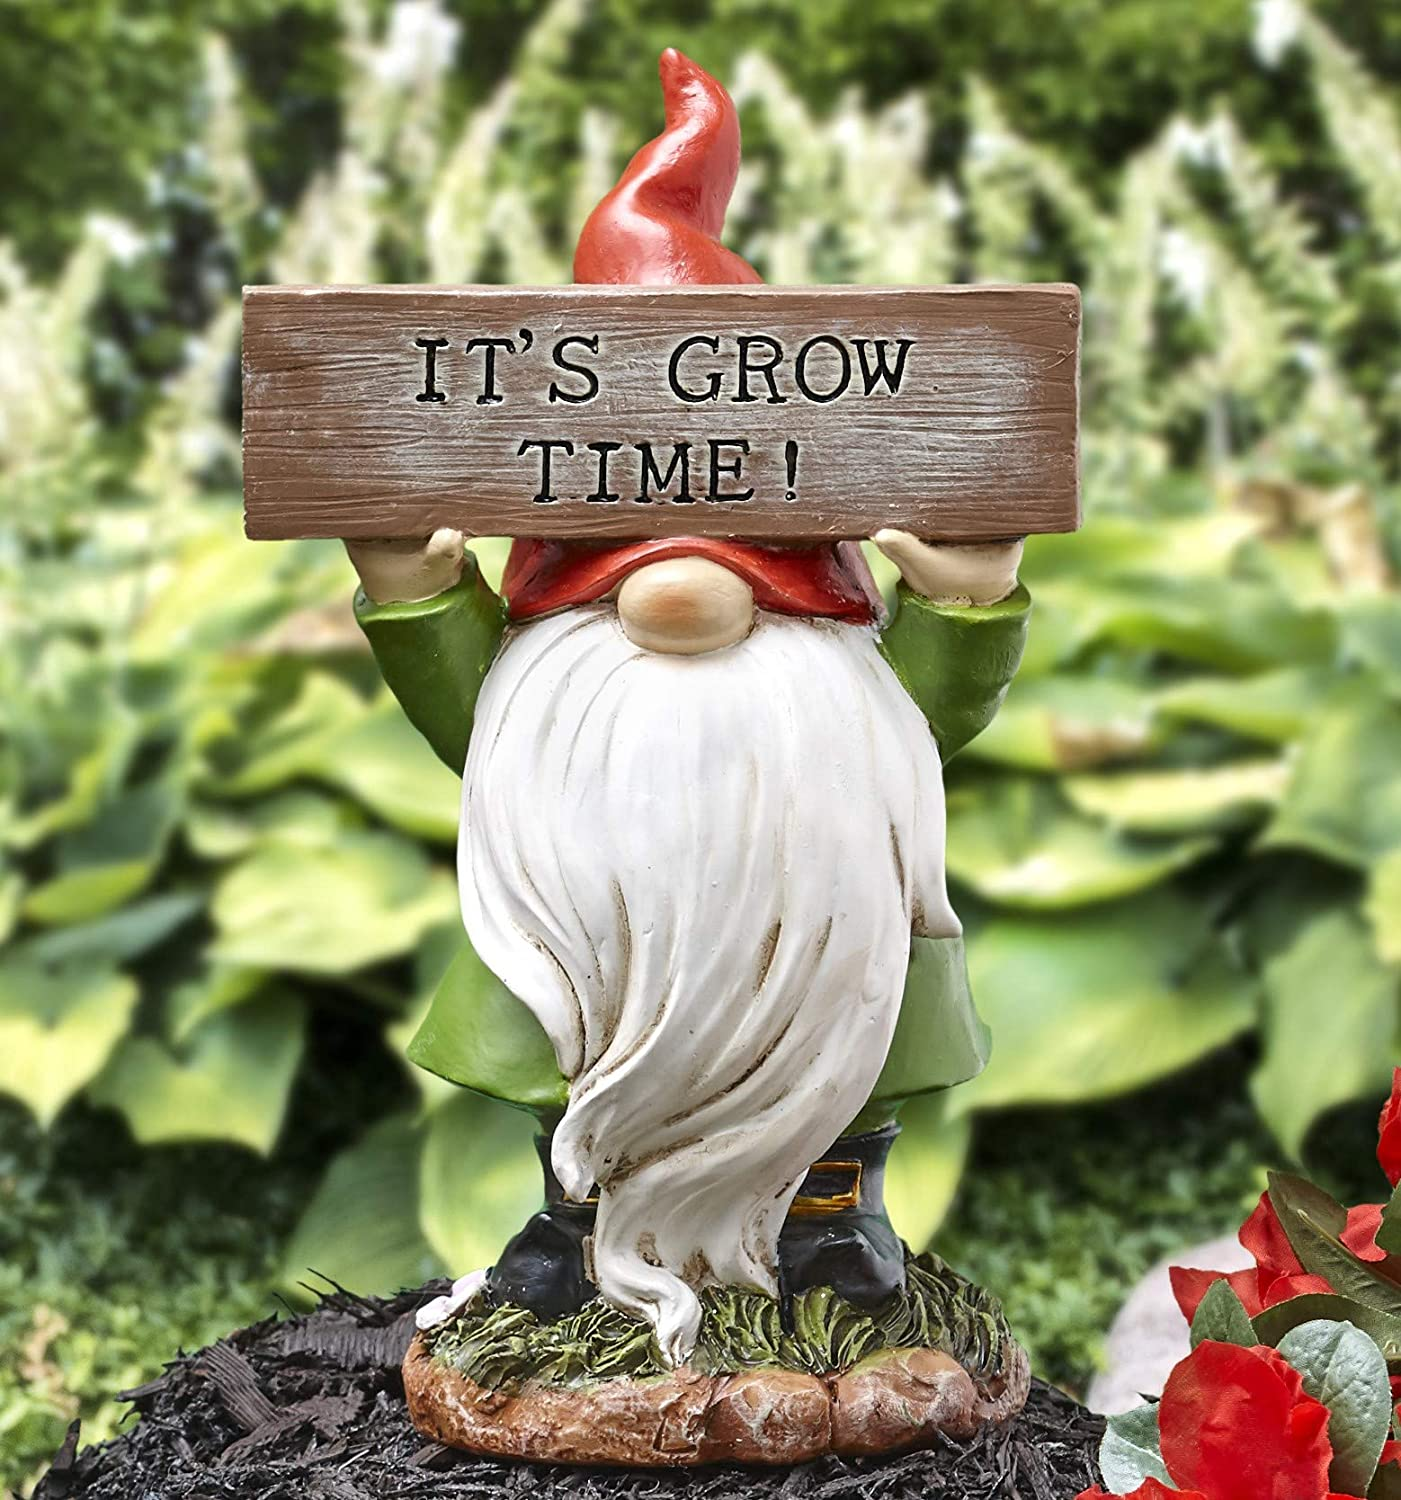 The Lakeside Collection Garden Gnome with Sign - It's Grow Time - Decorative Outdoor Statue